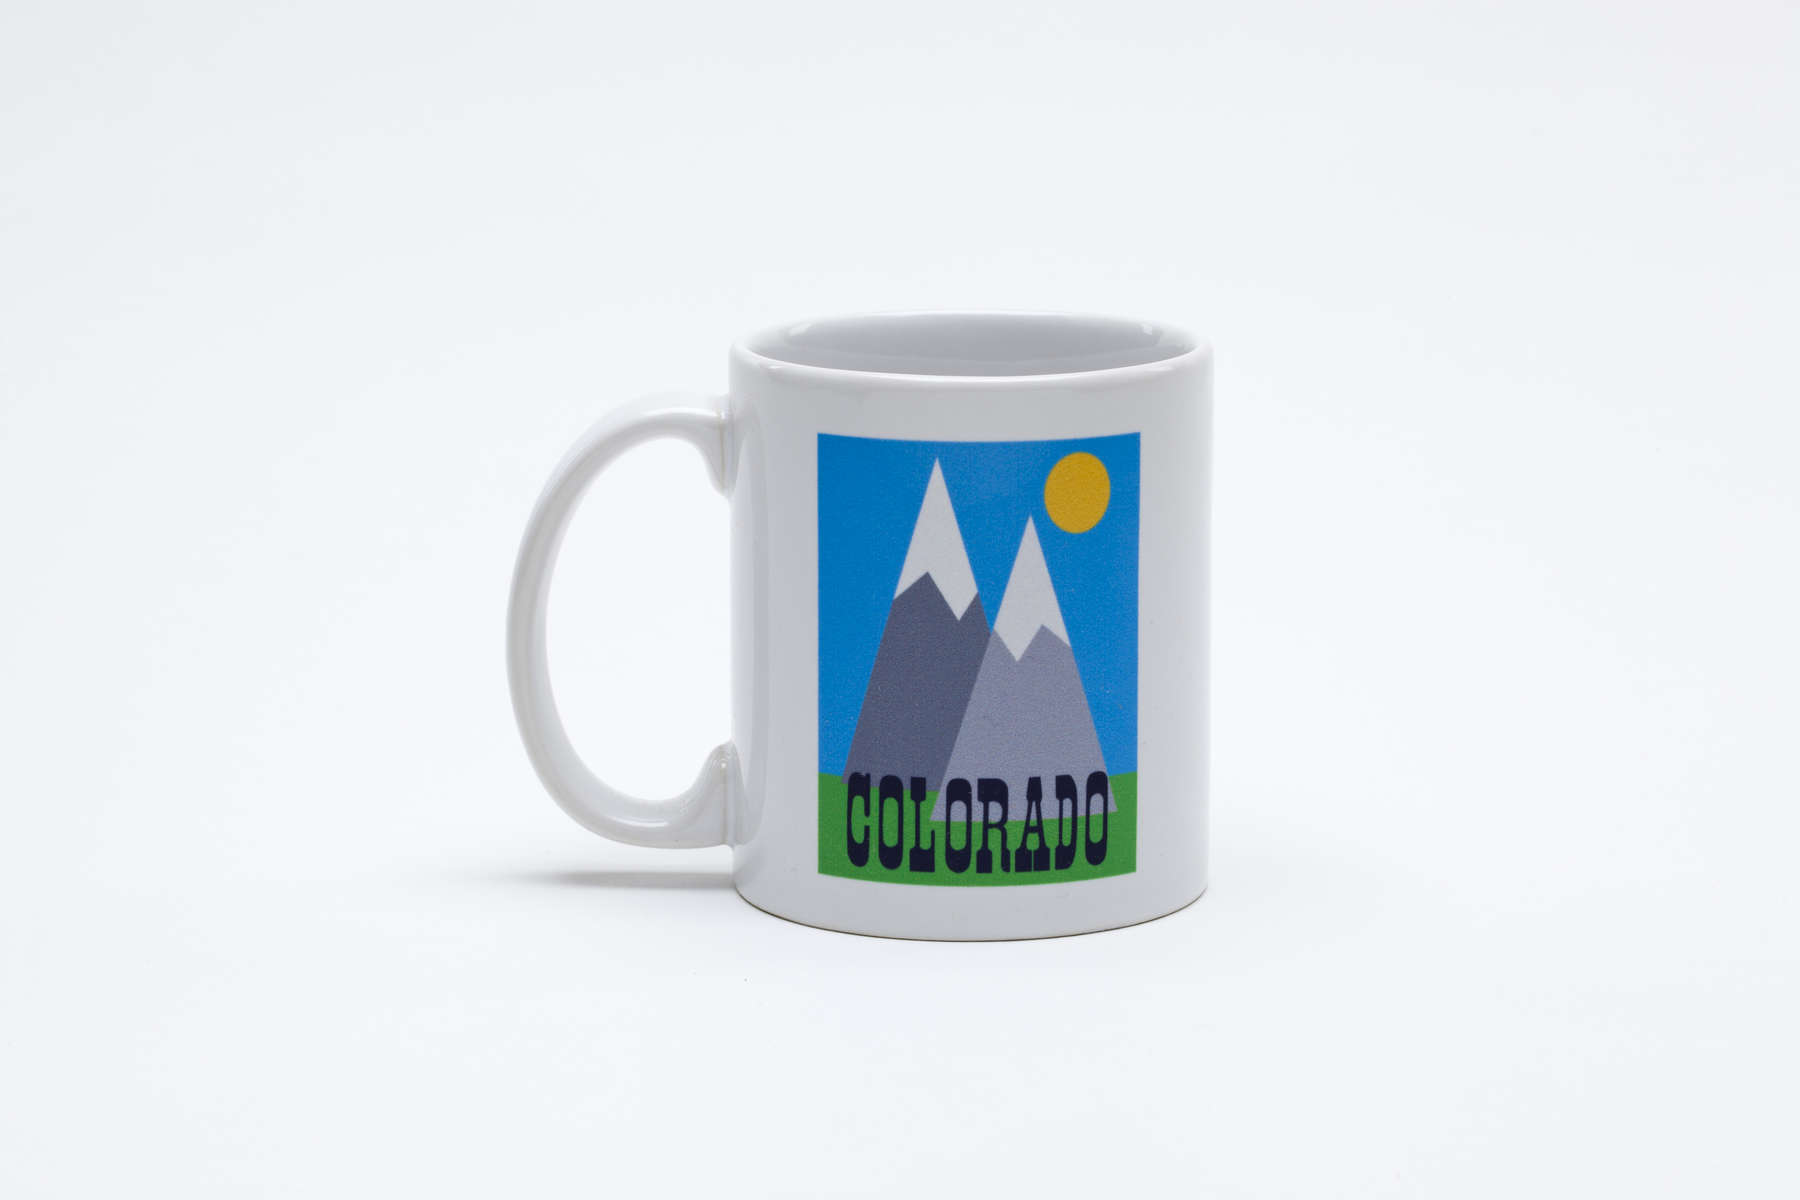 pURCHASE hEREcolorado... what's not to love?!can you think of a better way to start your day off than with this cheery little mug?  let's face it, your morning cup of joe would taste a million times better in an original doodlegirl designs' beverage vessel.  and if, by chance, you are not into coffee, this one works just as well for tea or water or even whiskey (although we don't condone morning boozing, unless it's a very special occasion!).so, why not pick one up for yourself (and for a friend) today?!dishwasher + microwave safe.